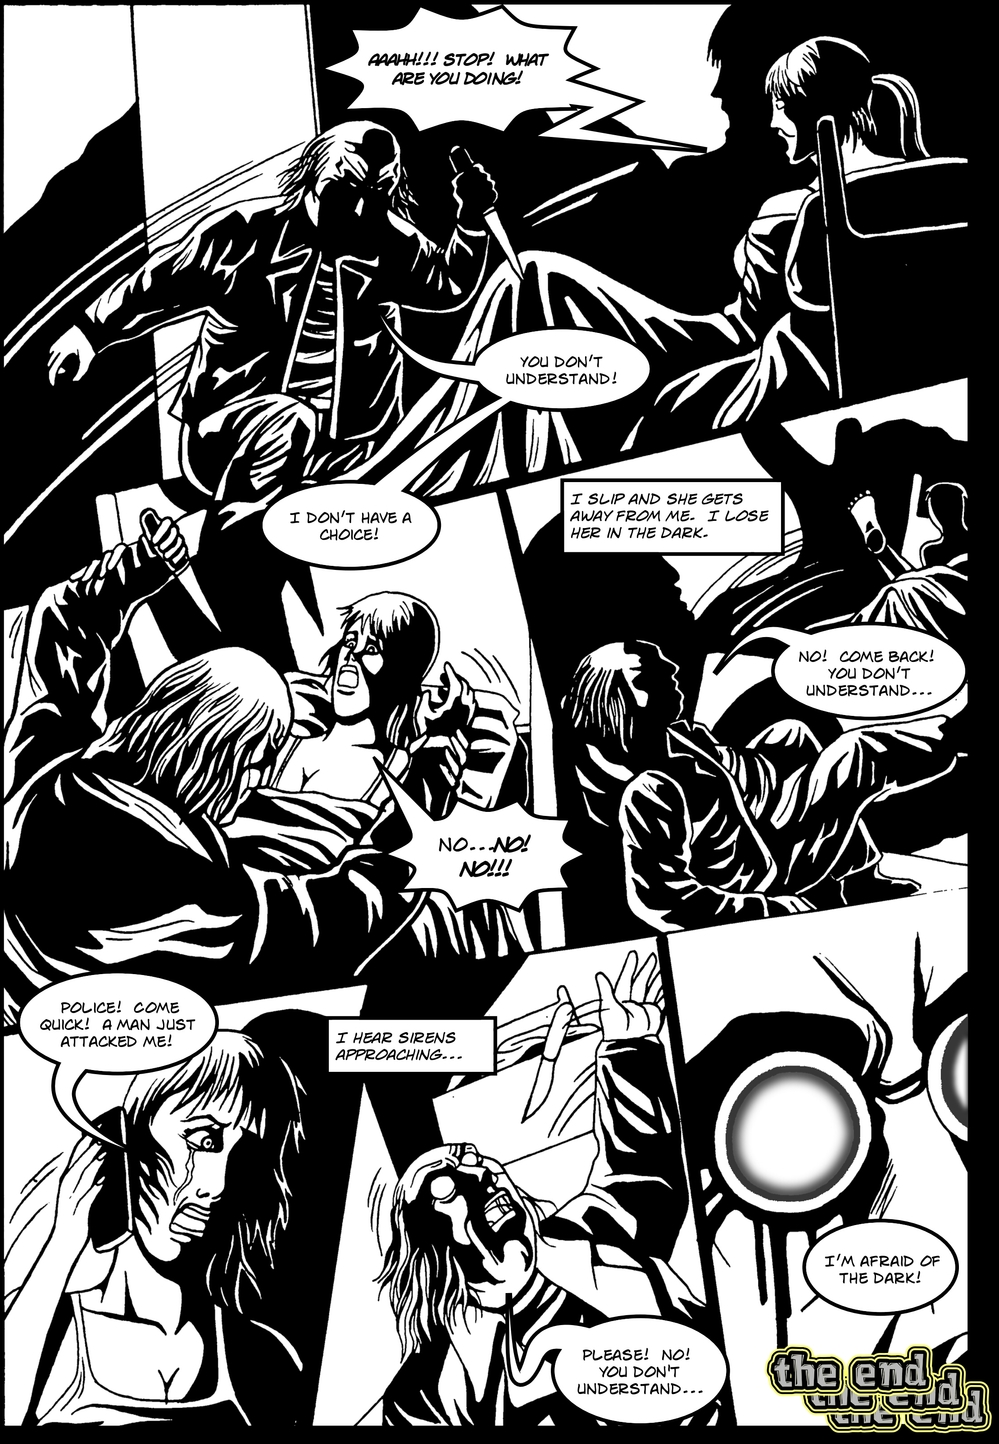 EYES page 6 - story 2 in The Book of Lies